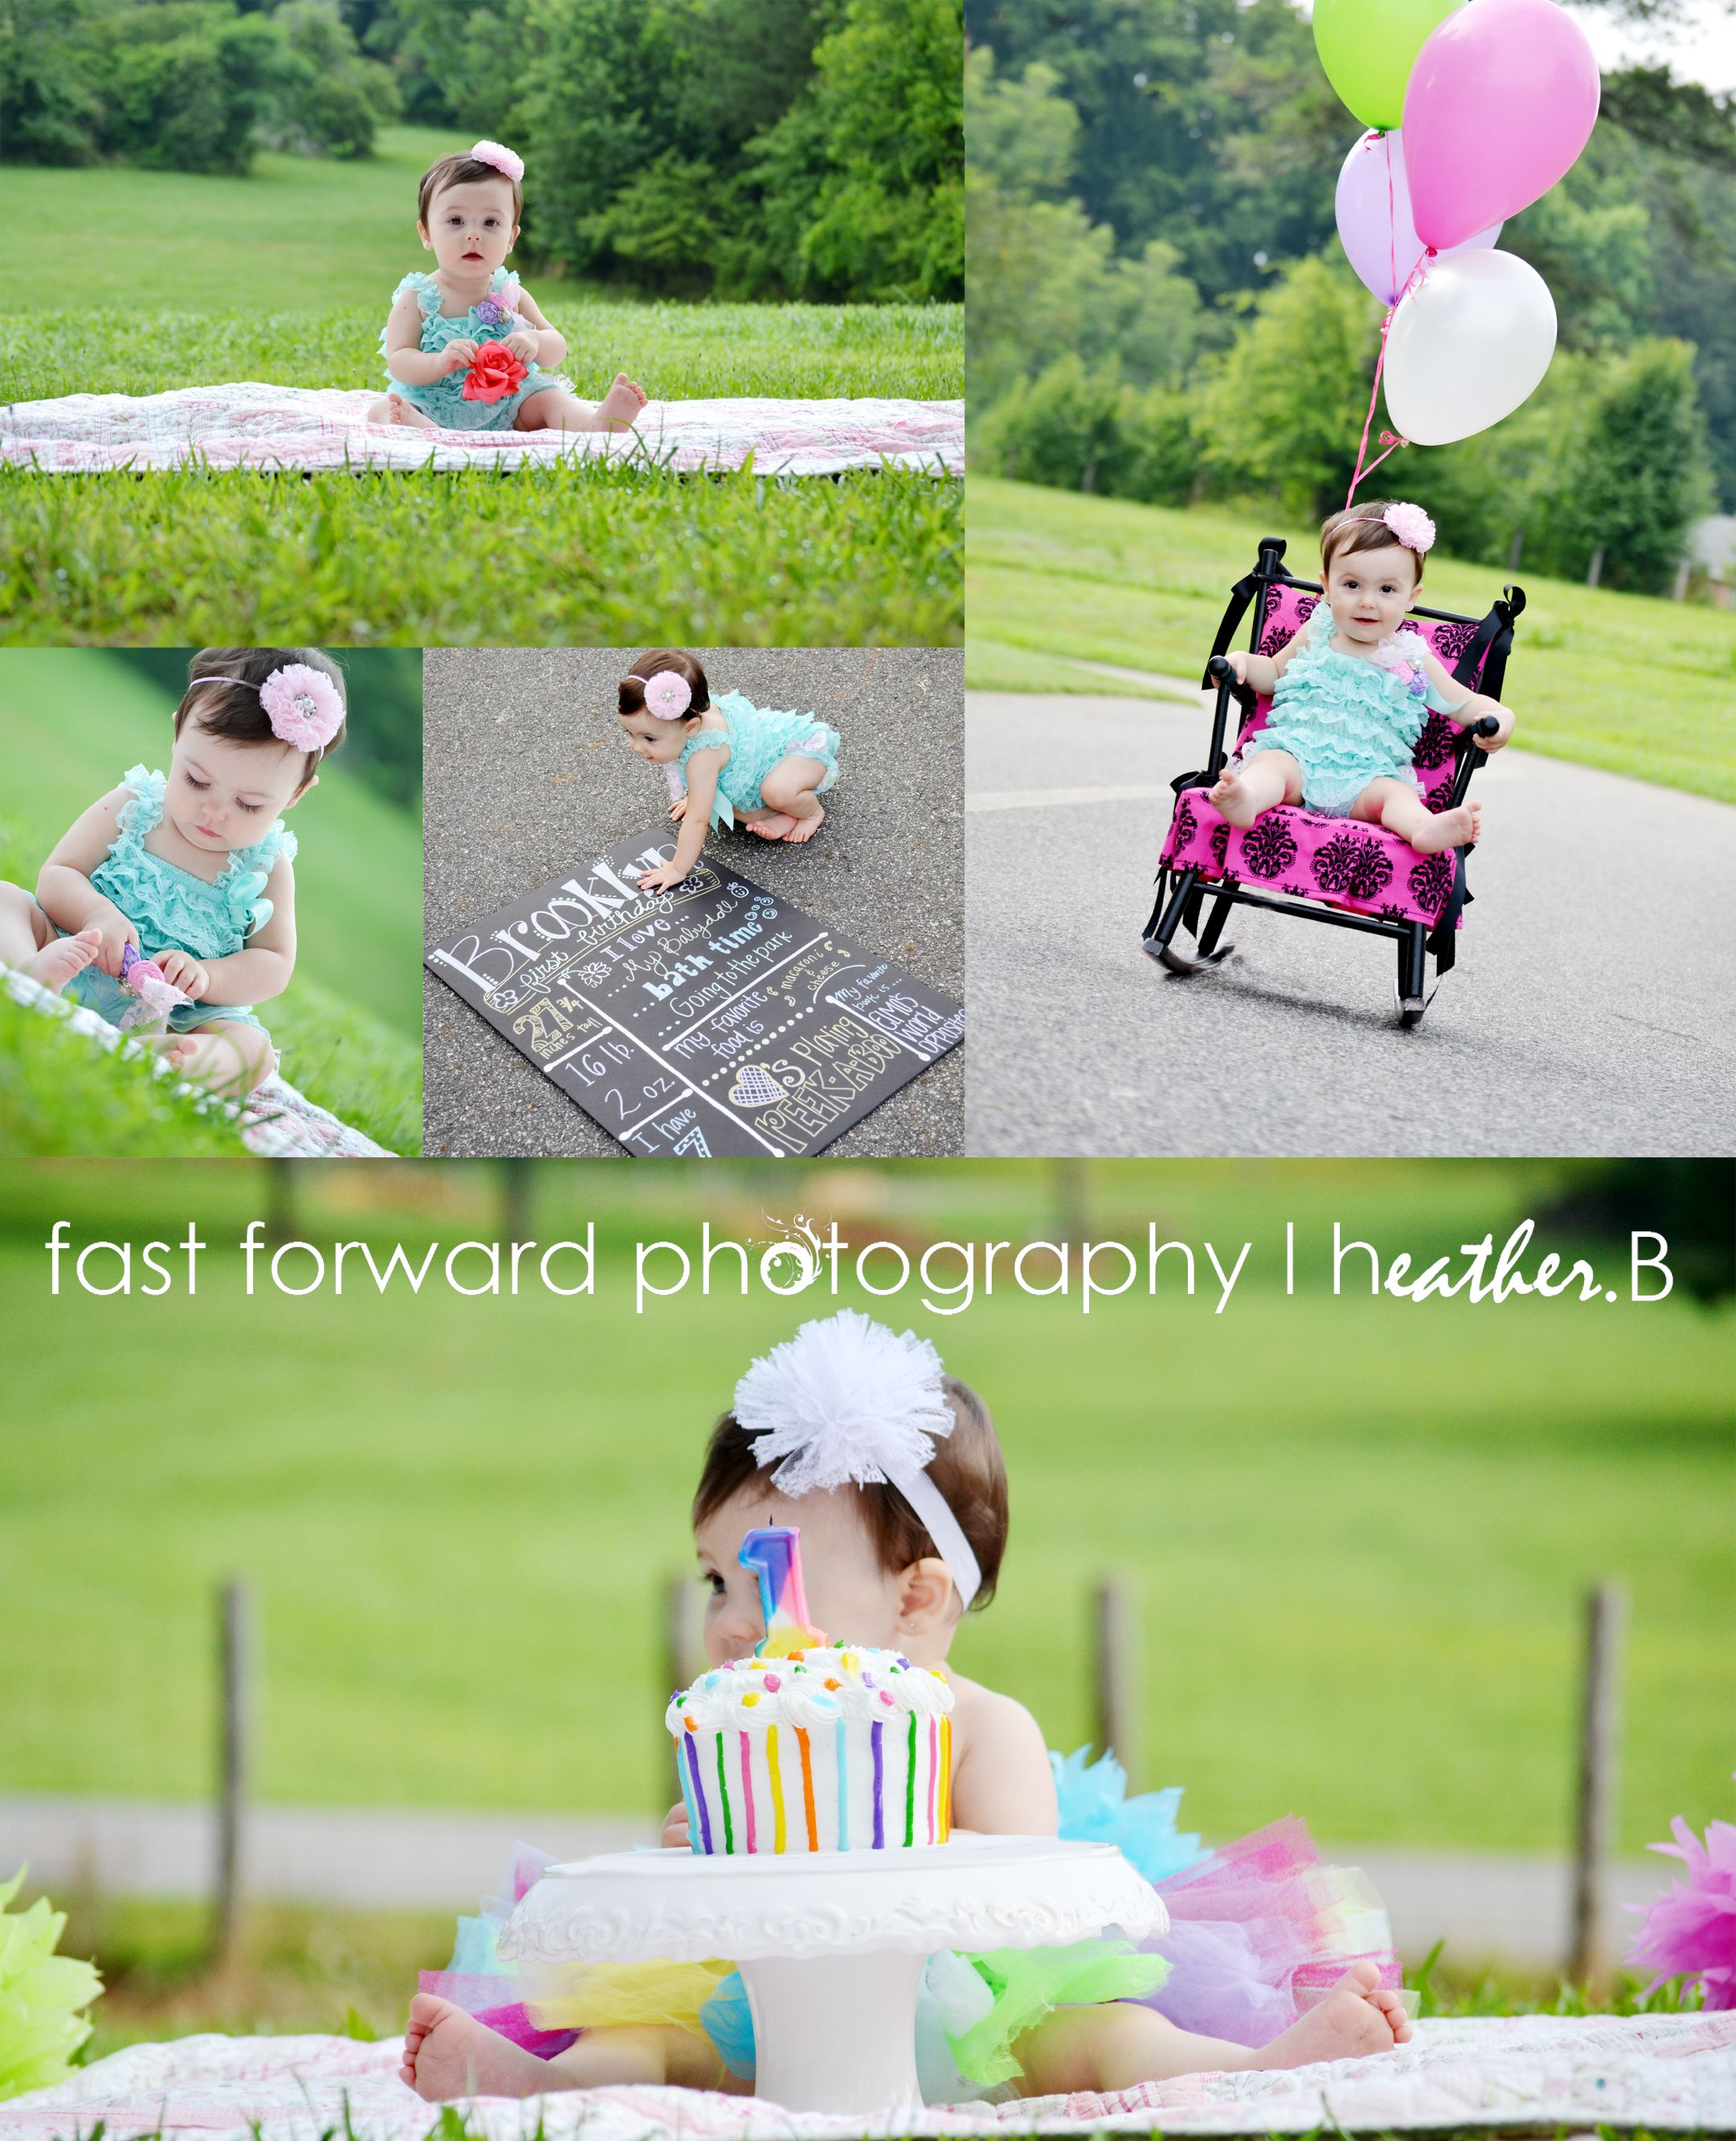 Baby First Birthday Photo Shoot Pose And Props Ideas Outdoor